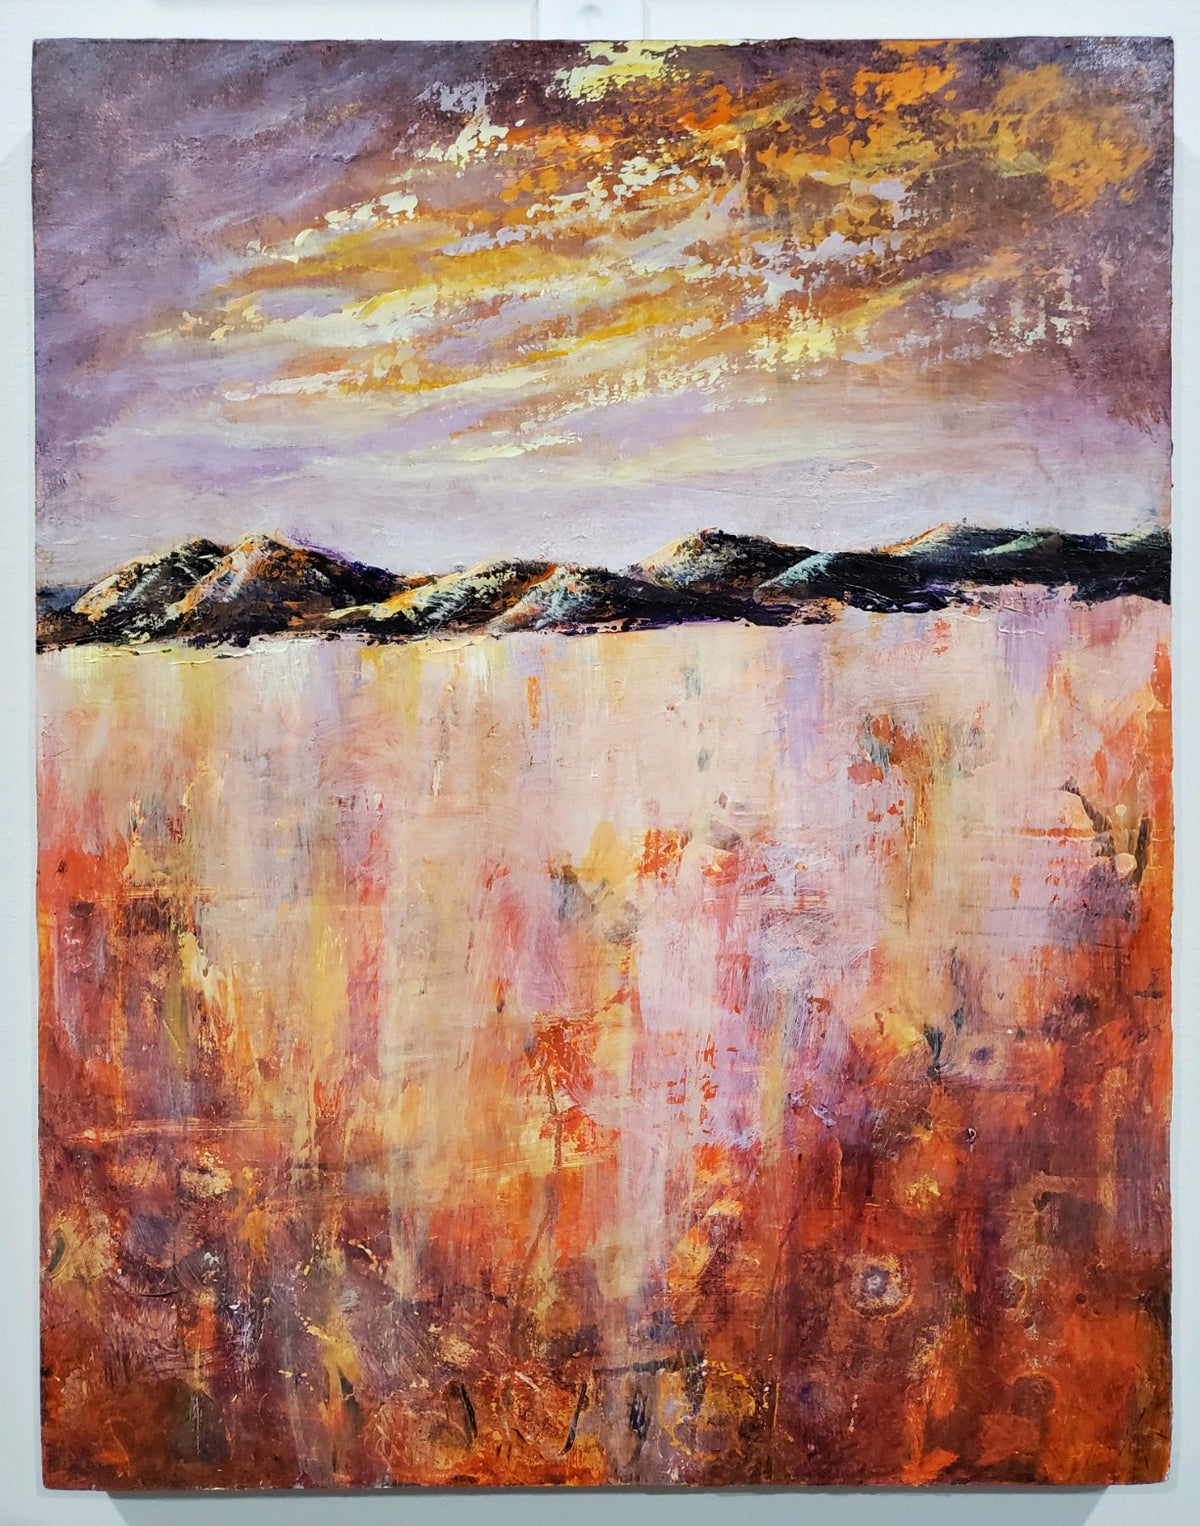 """Prairie Heat"" by Selena McColley, Acrylic Mixed Media"